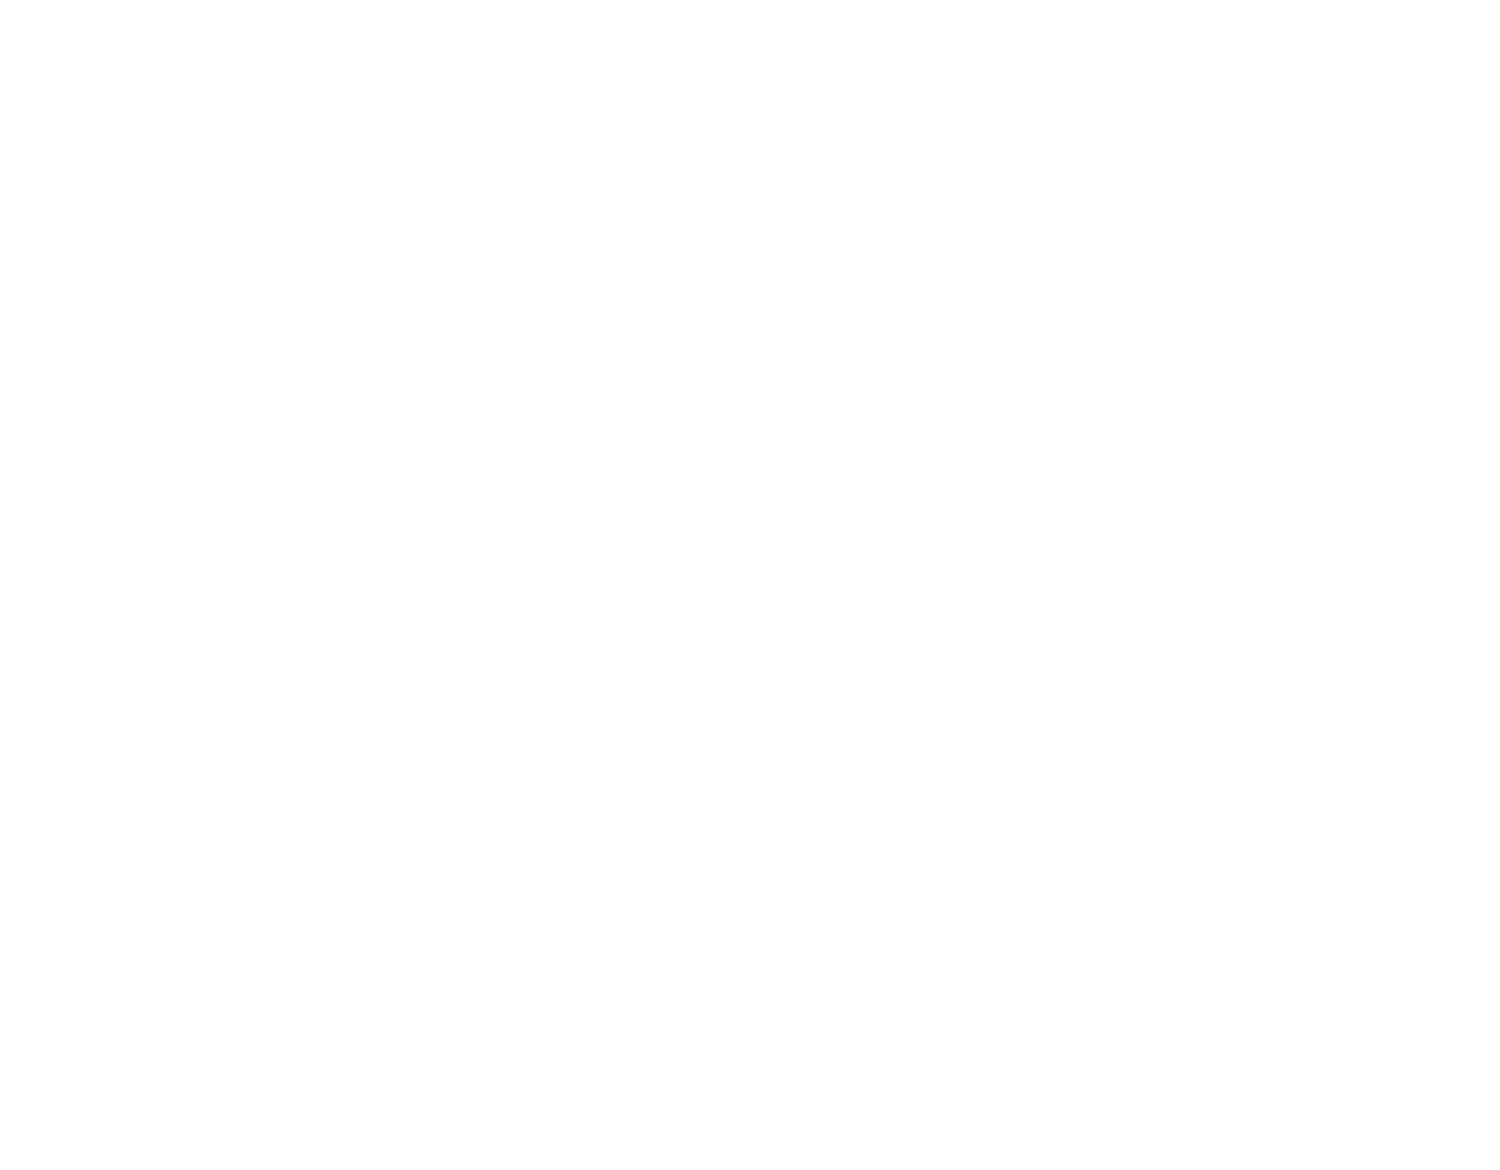 Mixed Ability Rugby